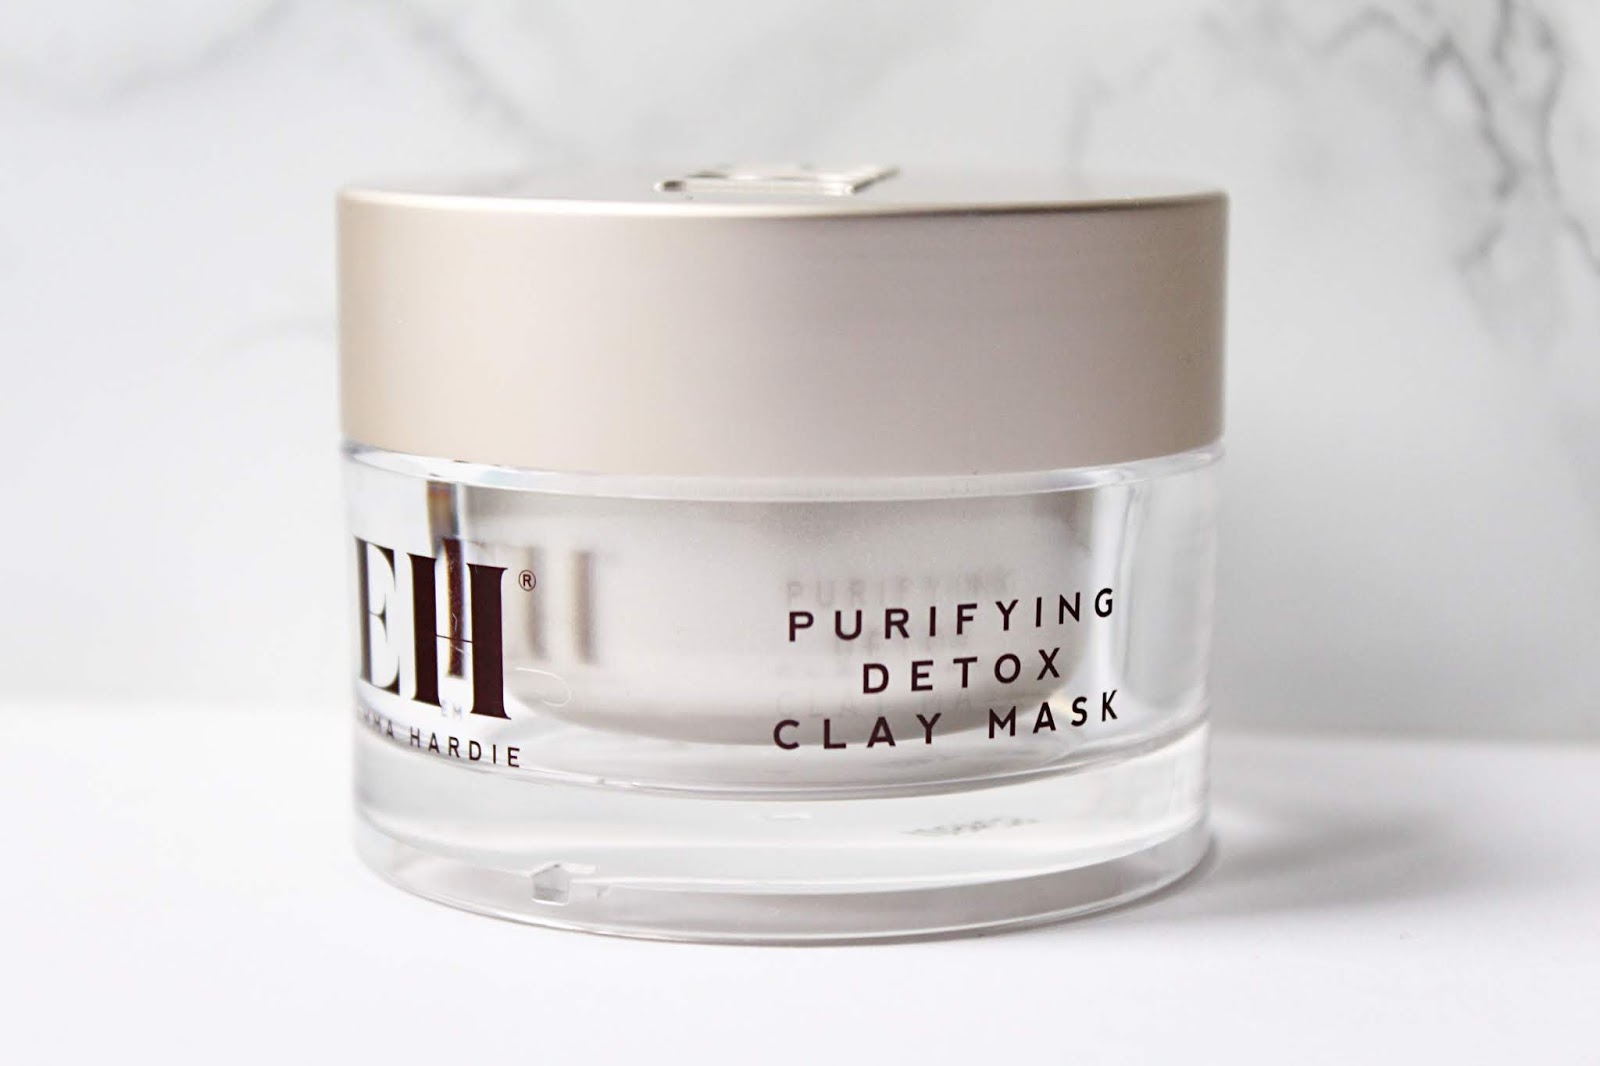 Emma Hardie Purifying Pink Clay Detox Mask Review